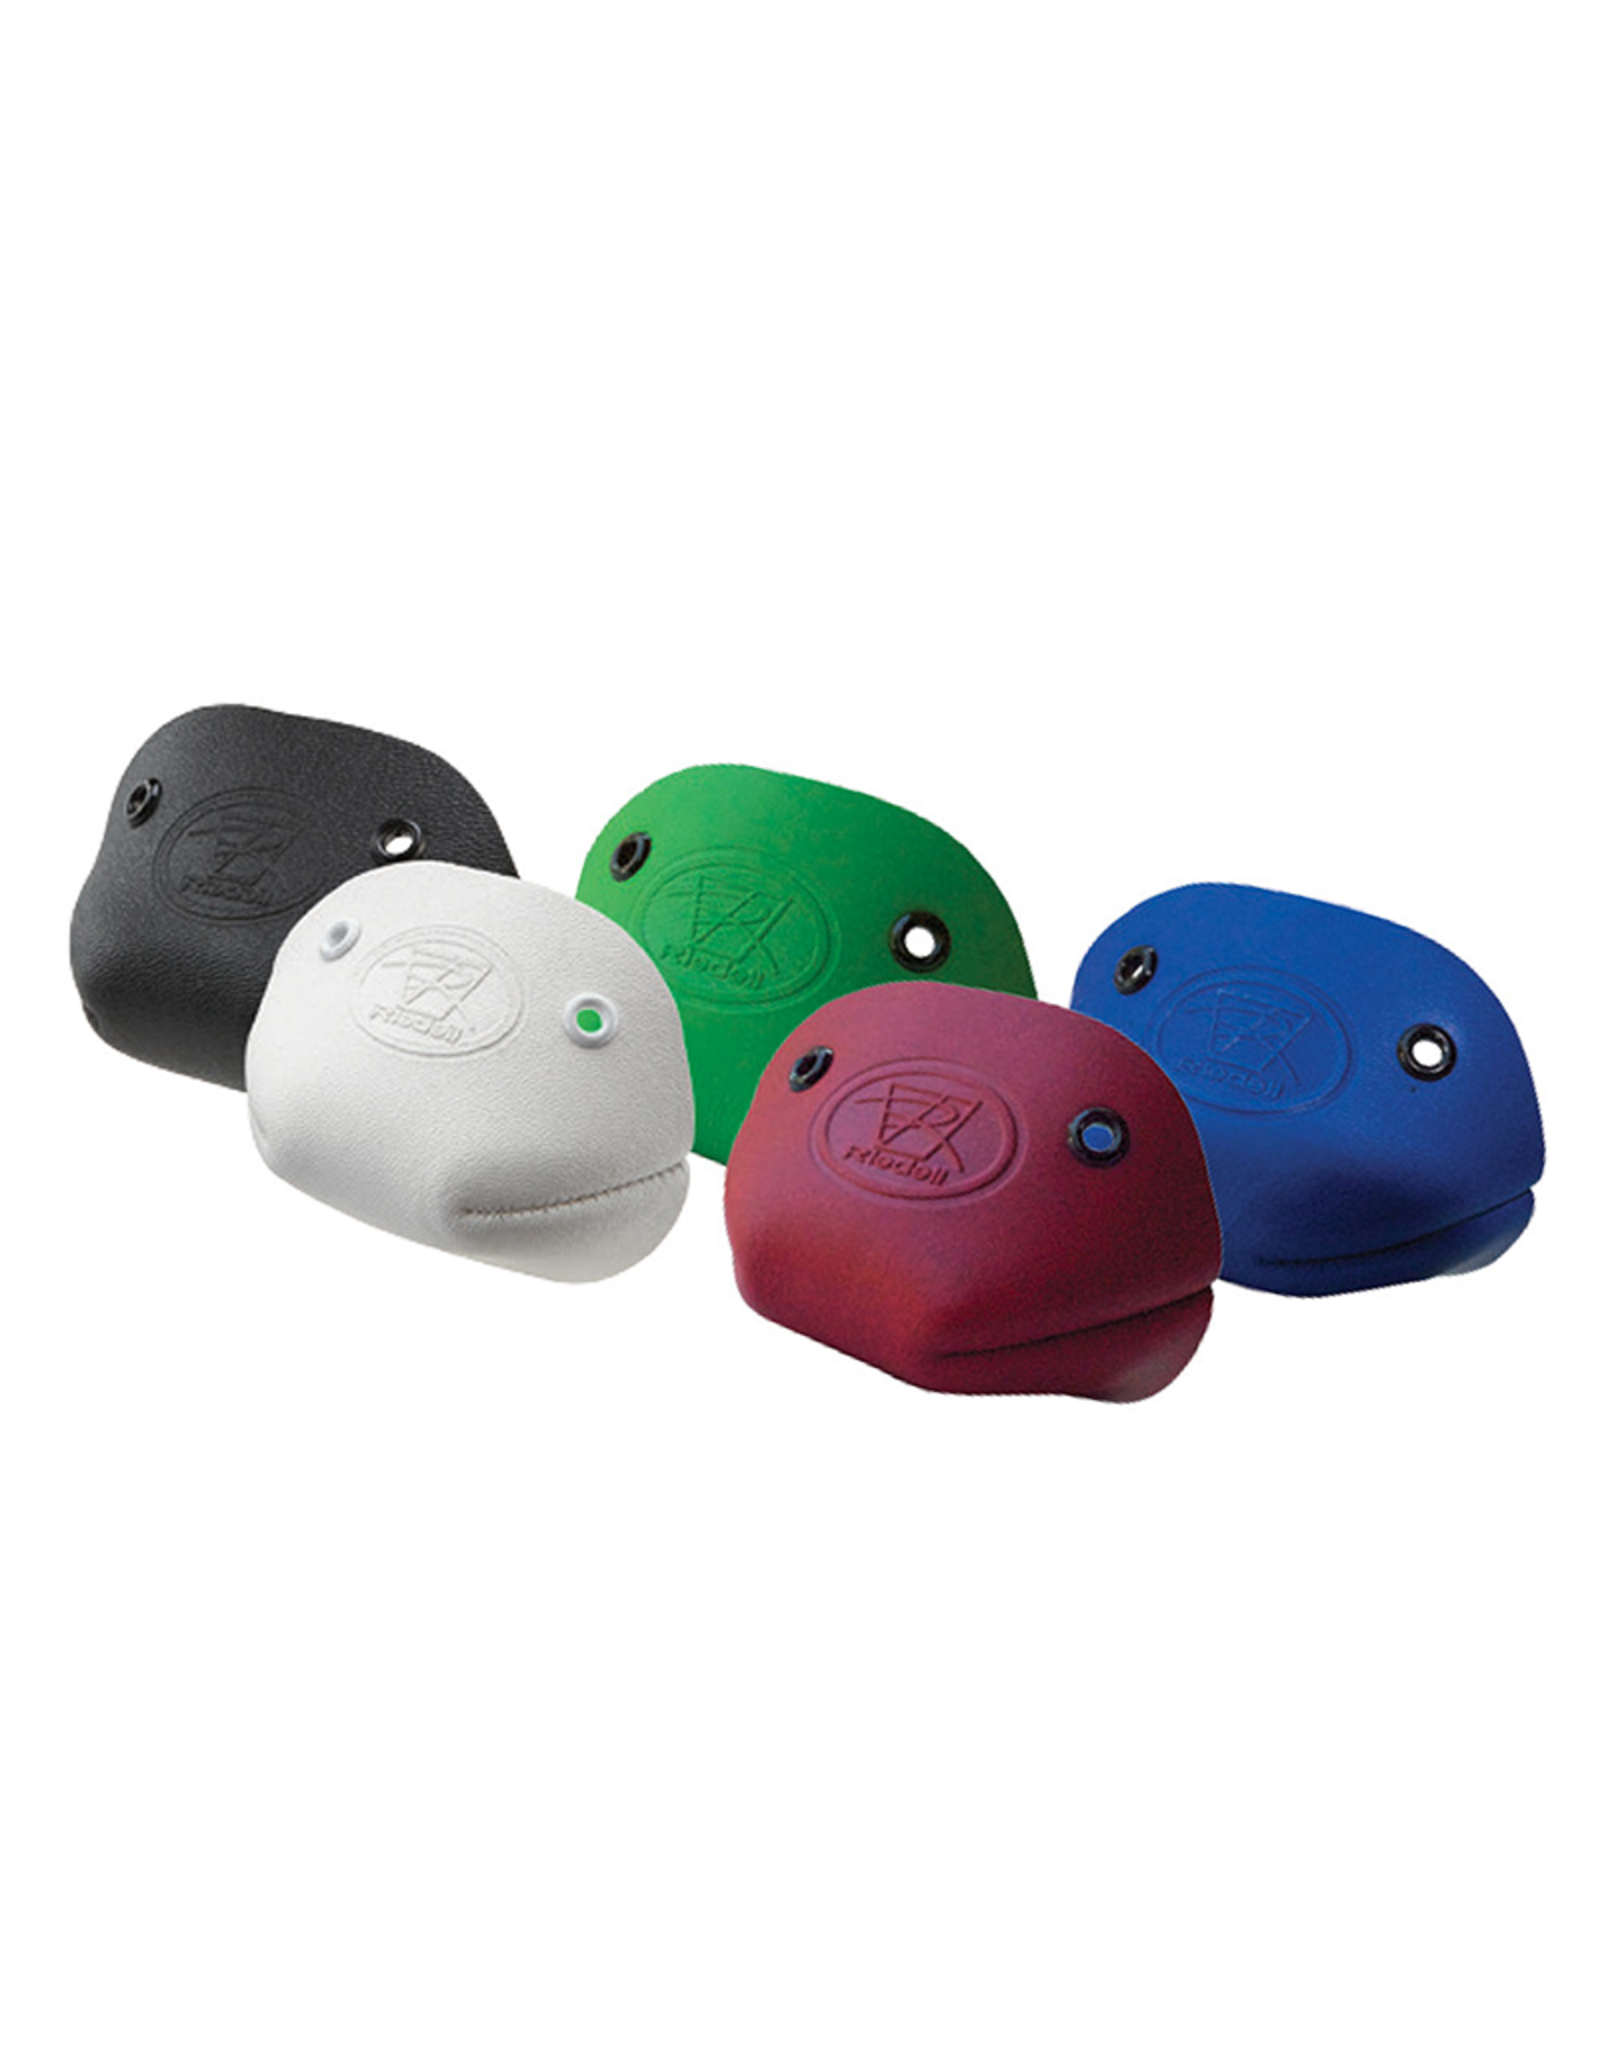 Riedell Riedell Toe Guard Caps, Pair